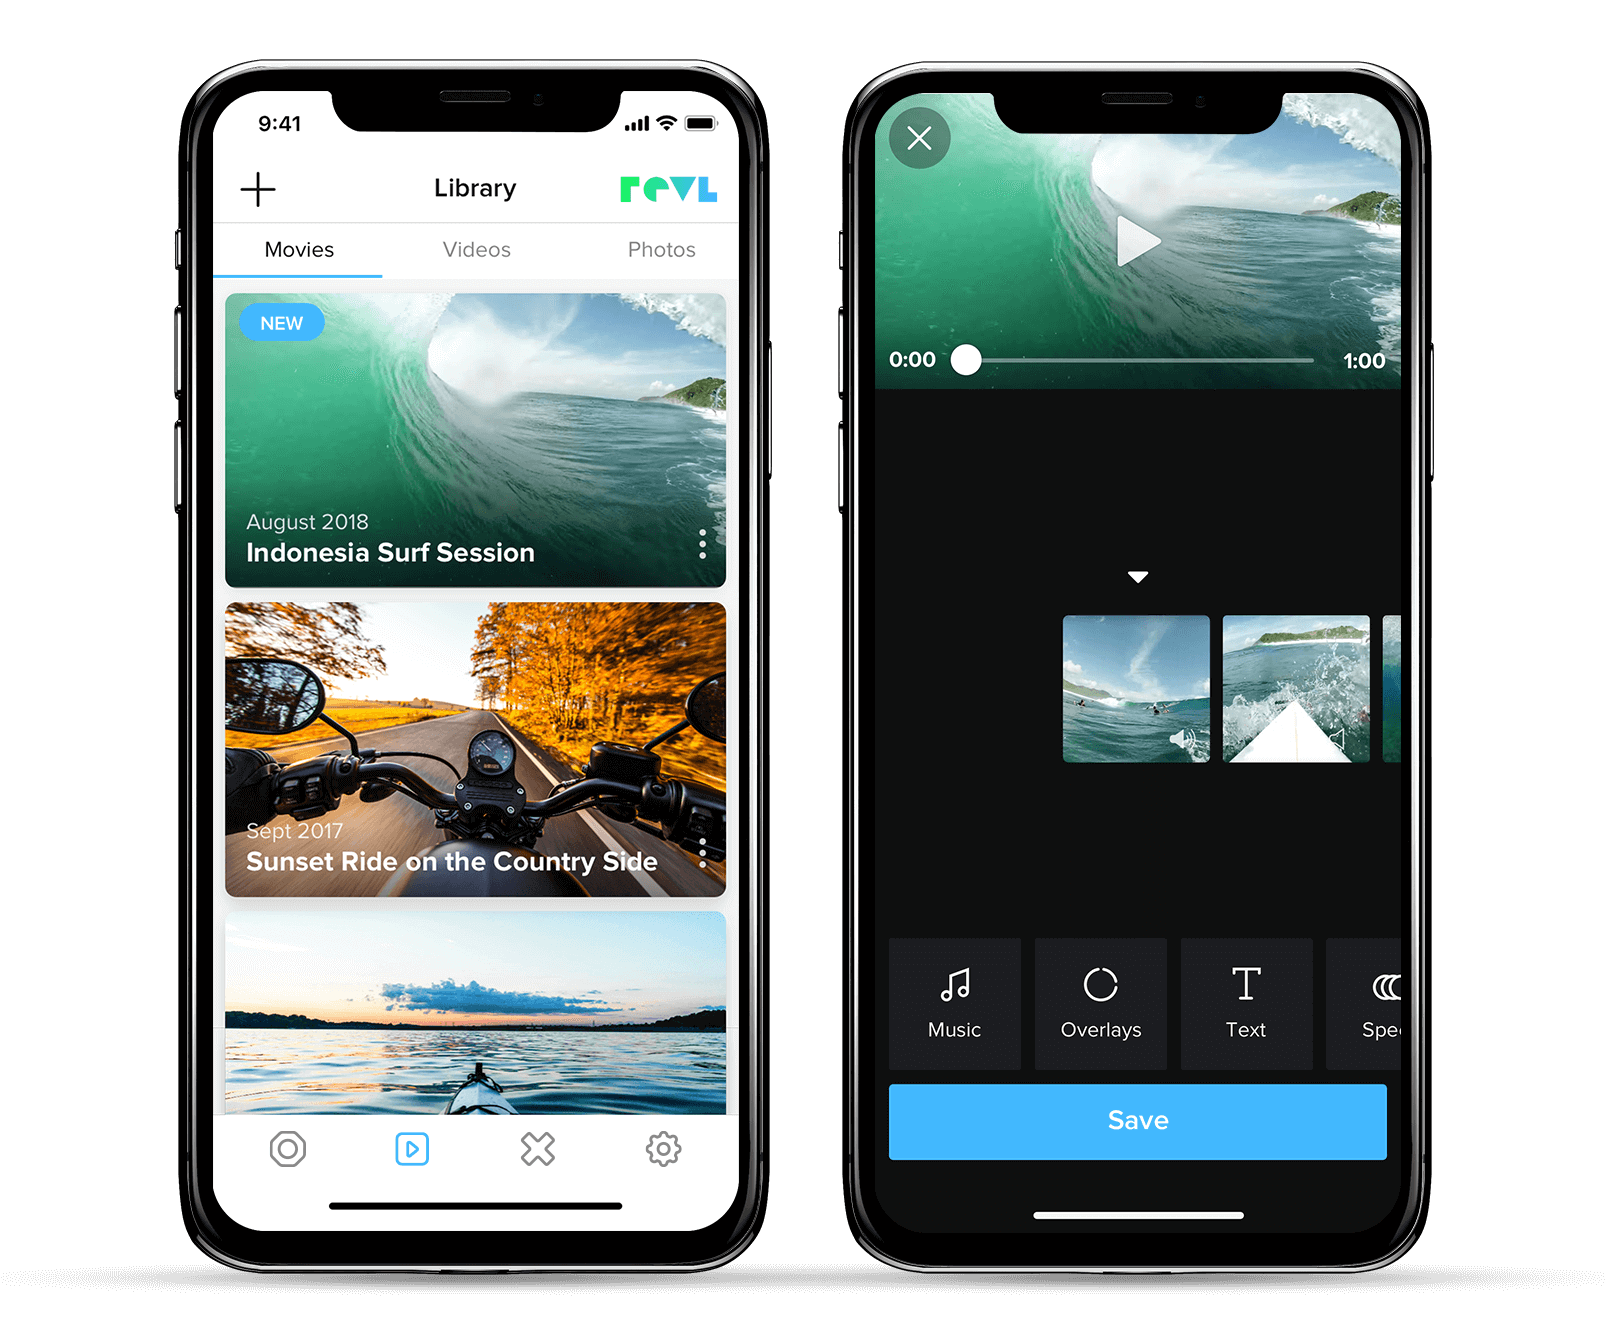 Edit Faster - Edit videos on the go with the Revl App. It makes transferring, downloading, editing, and sharing fast and easy.